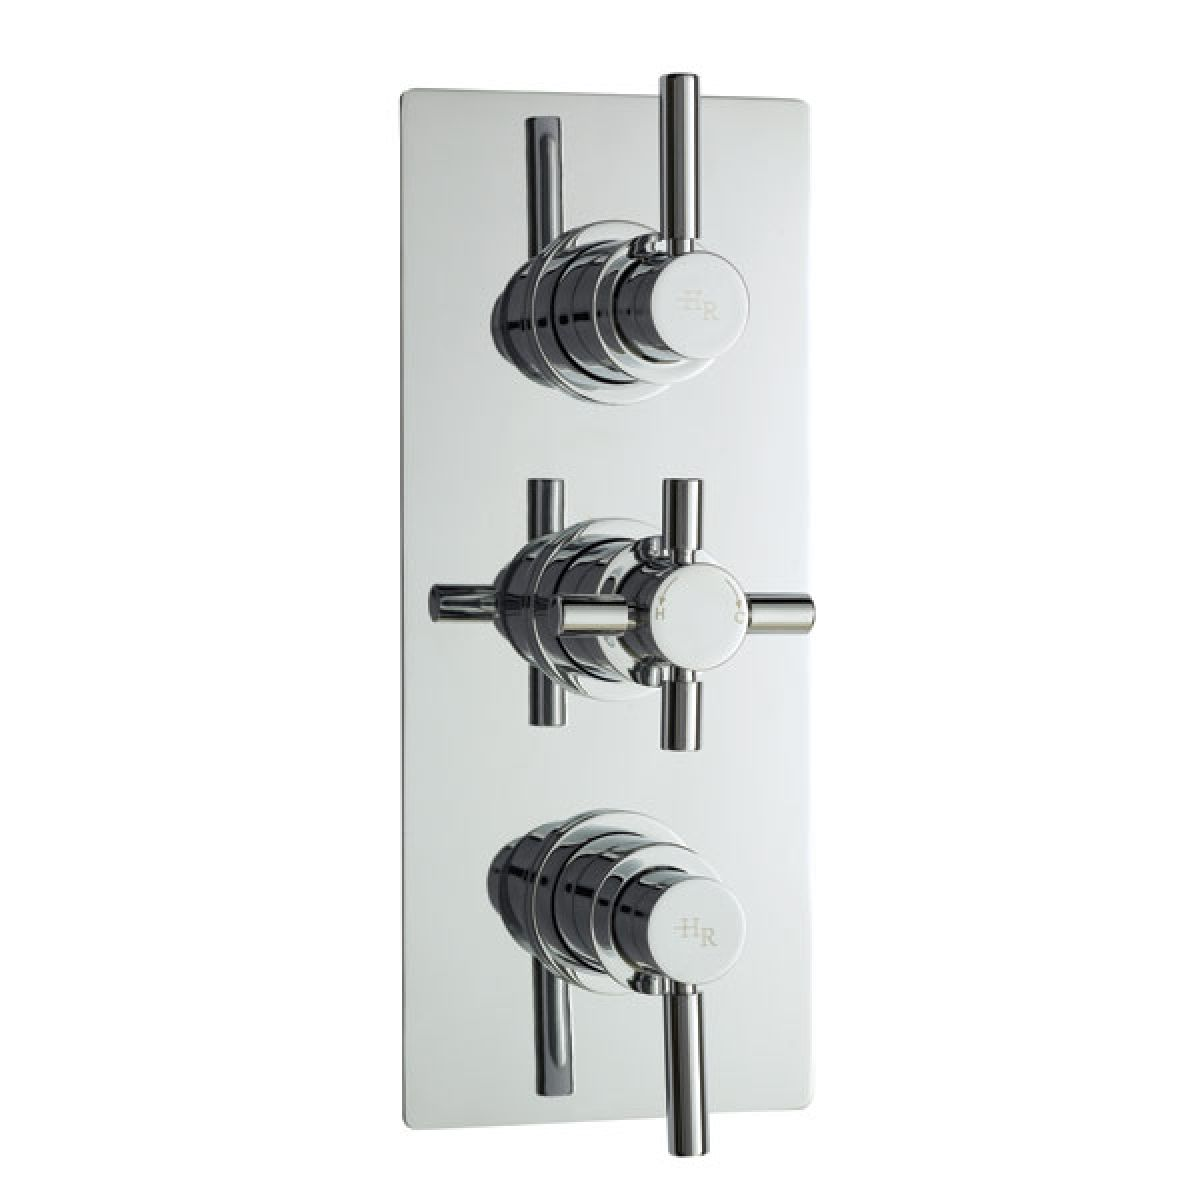 Hudson Reed Pura Plus Triple Concealed Thermostatic Shower Valve with Diverter